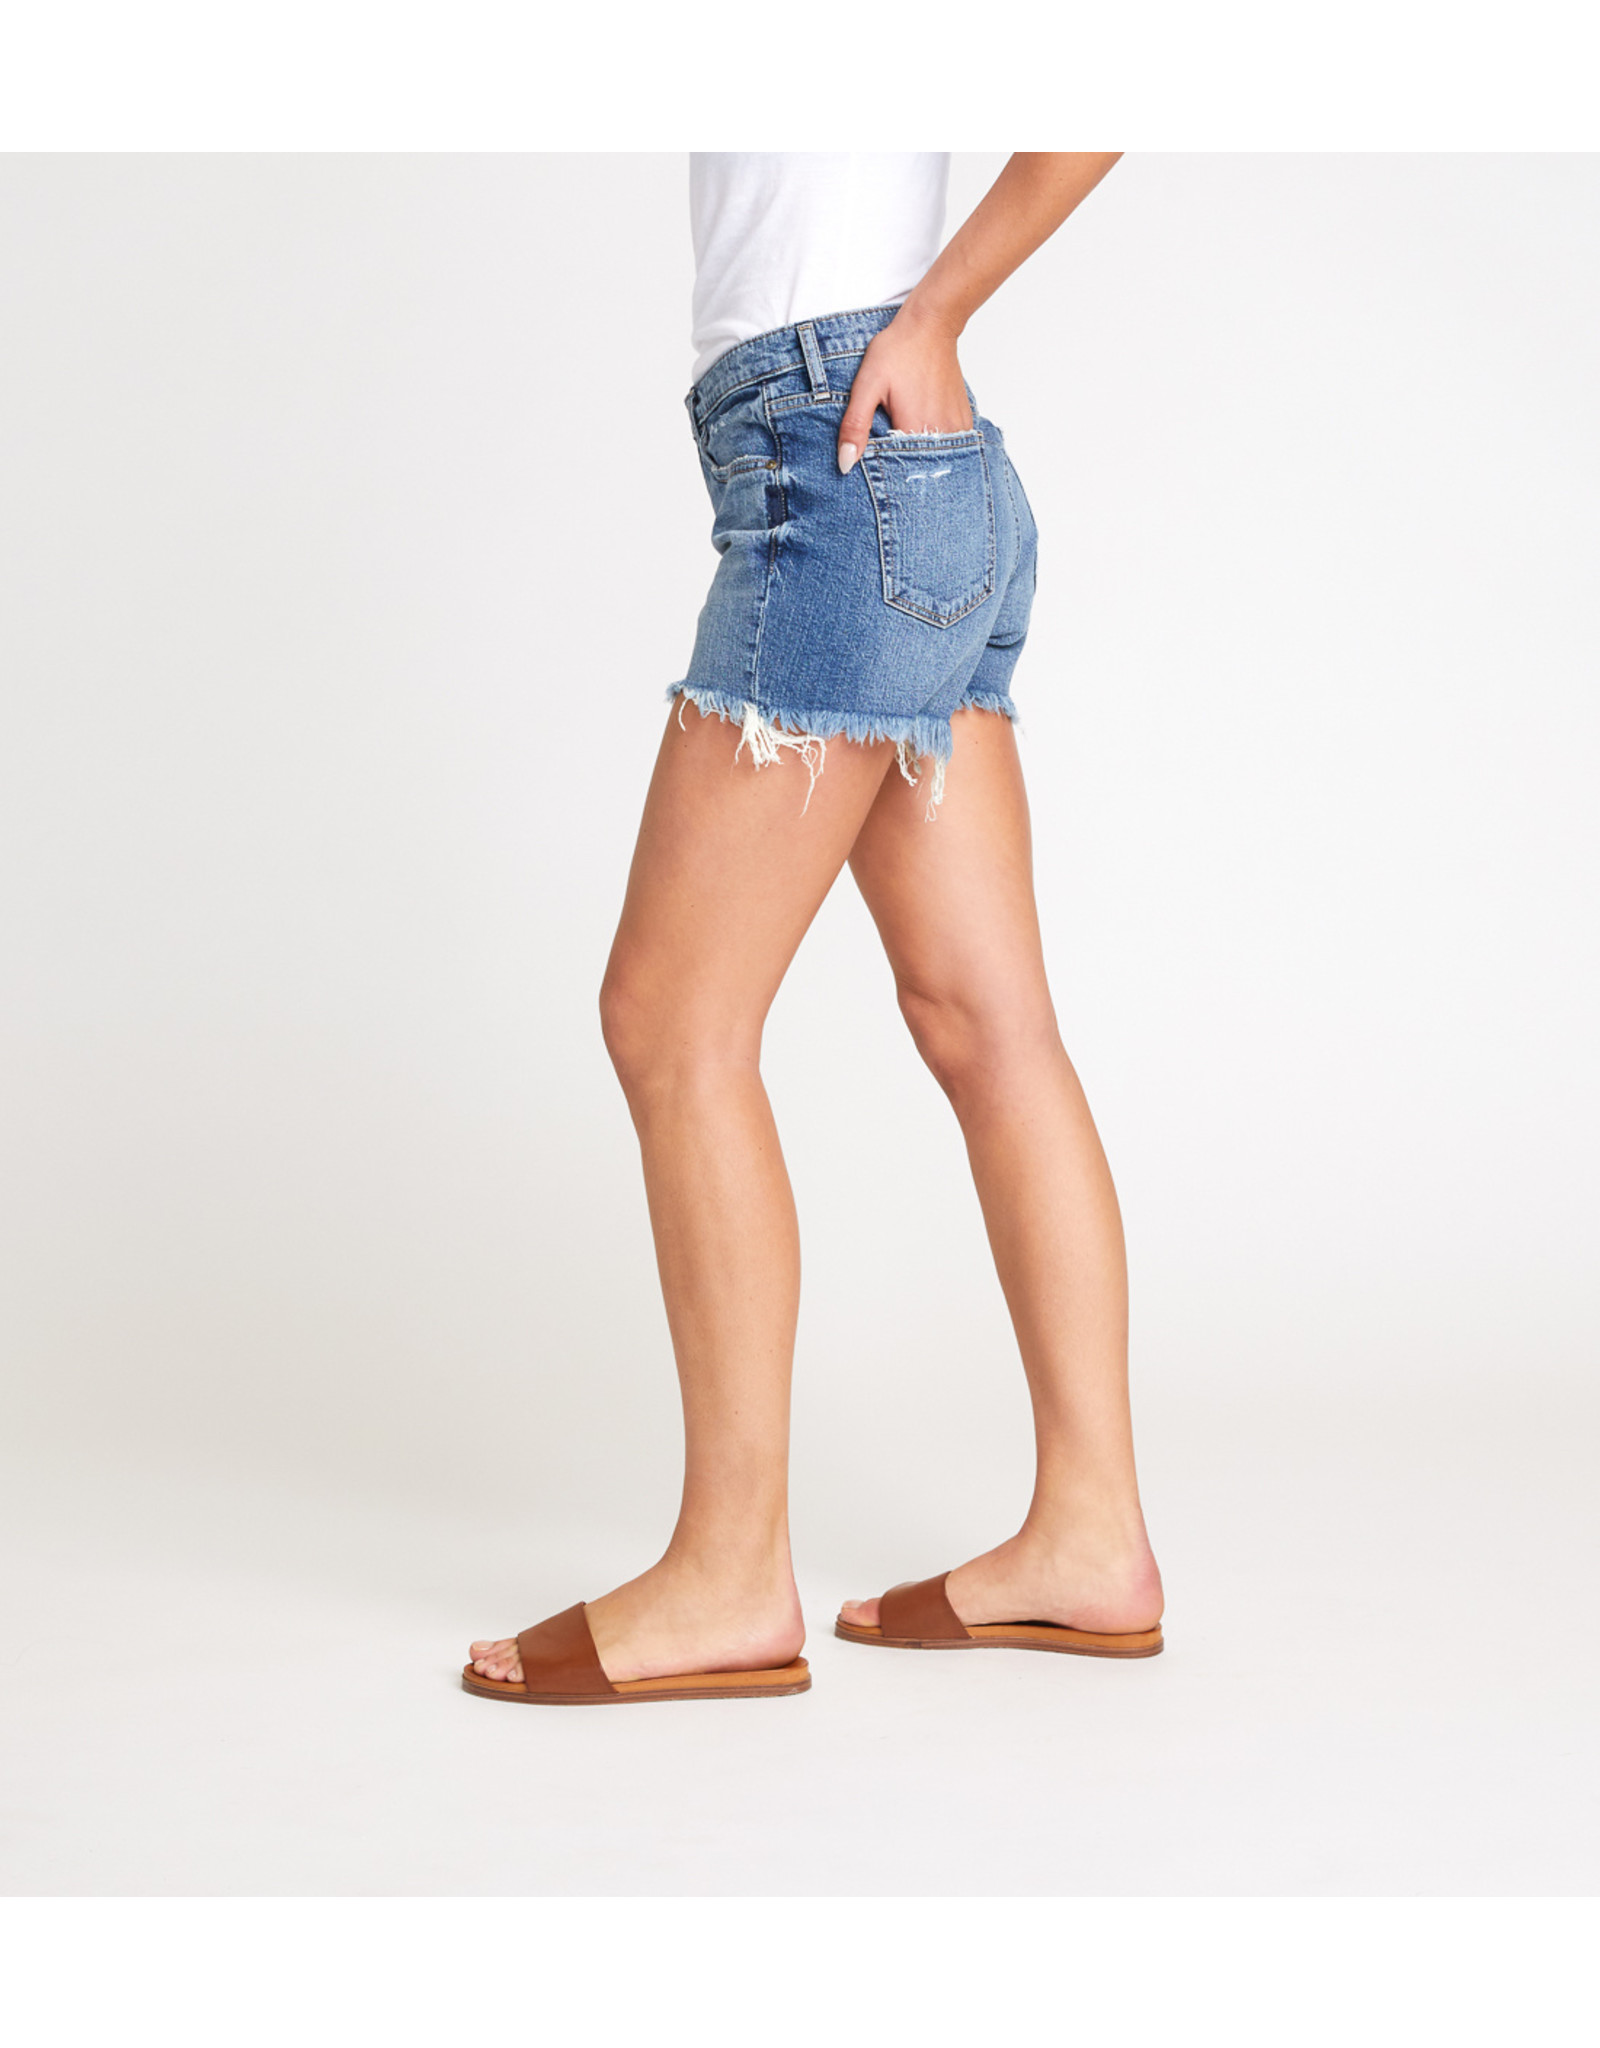 Silver Jeans - Not Your Boyfriends Shorts